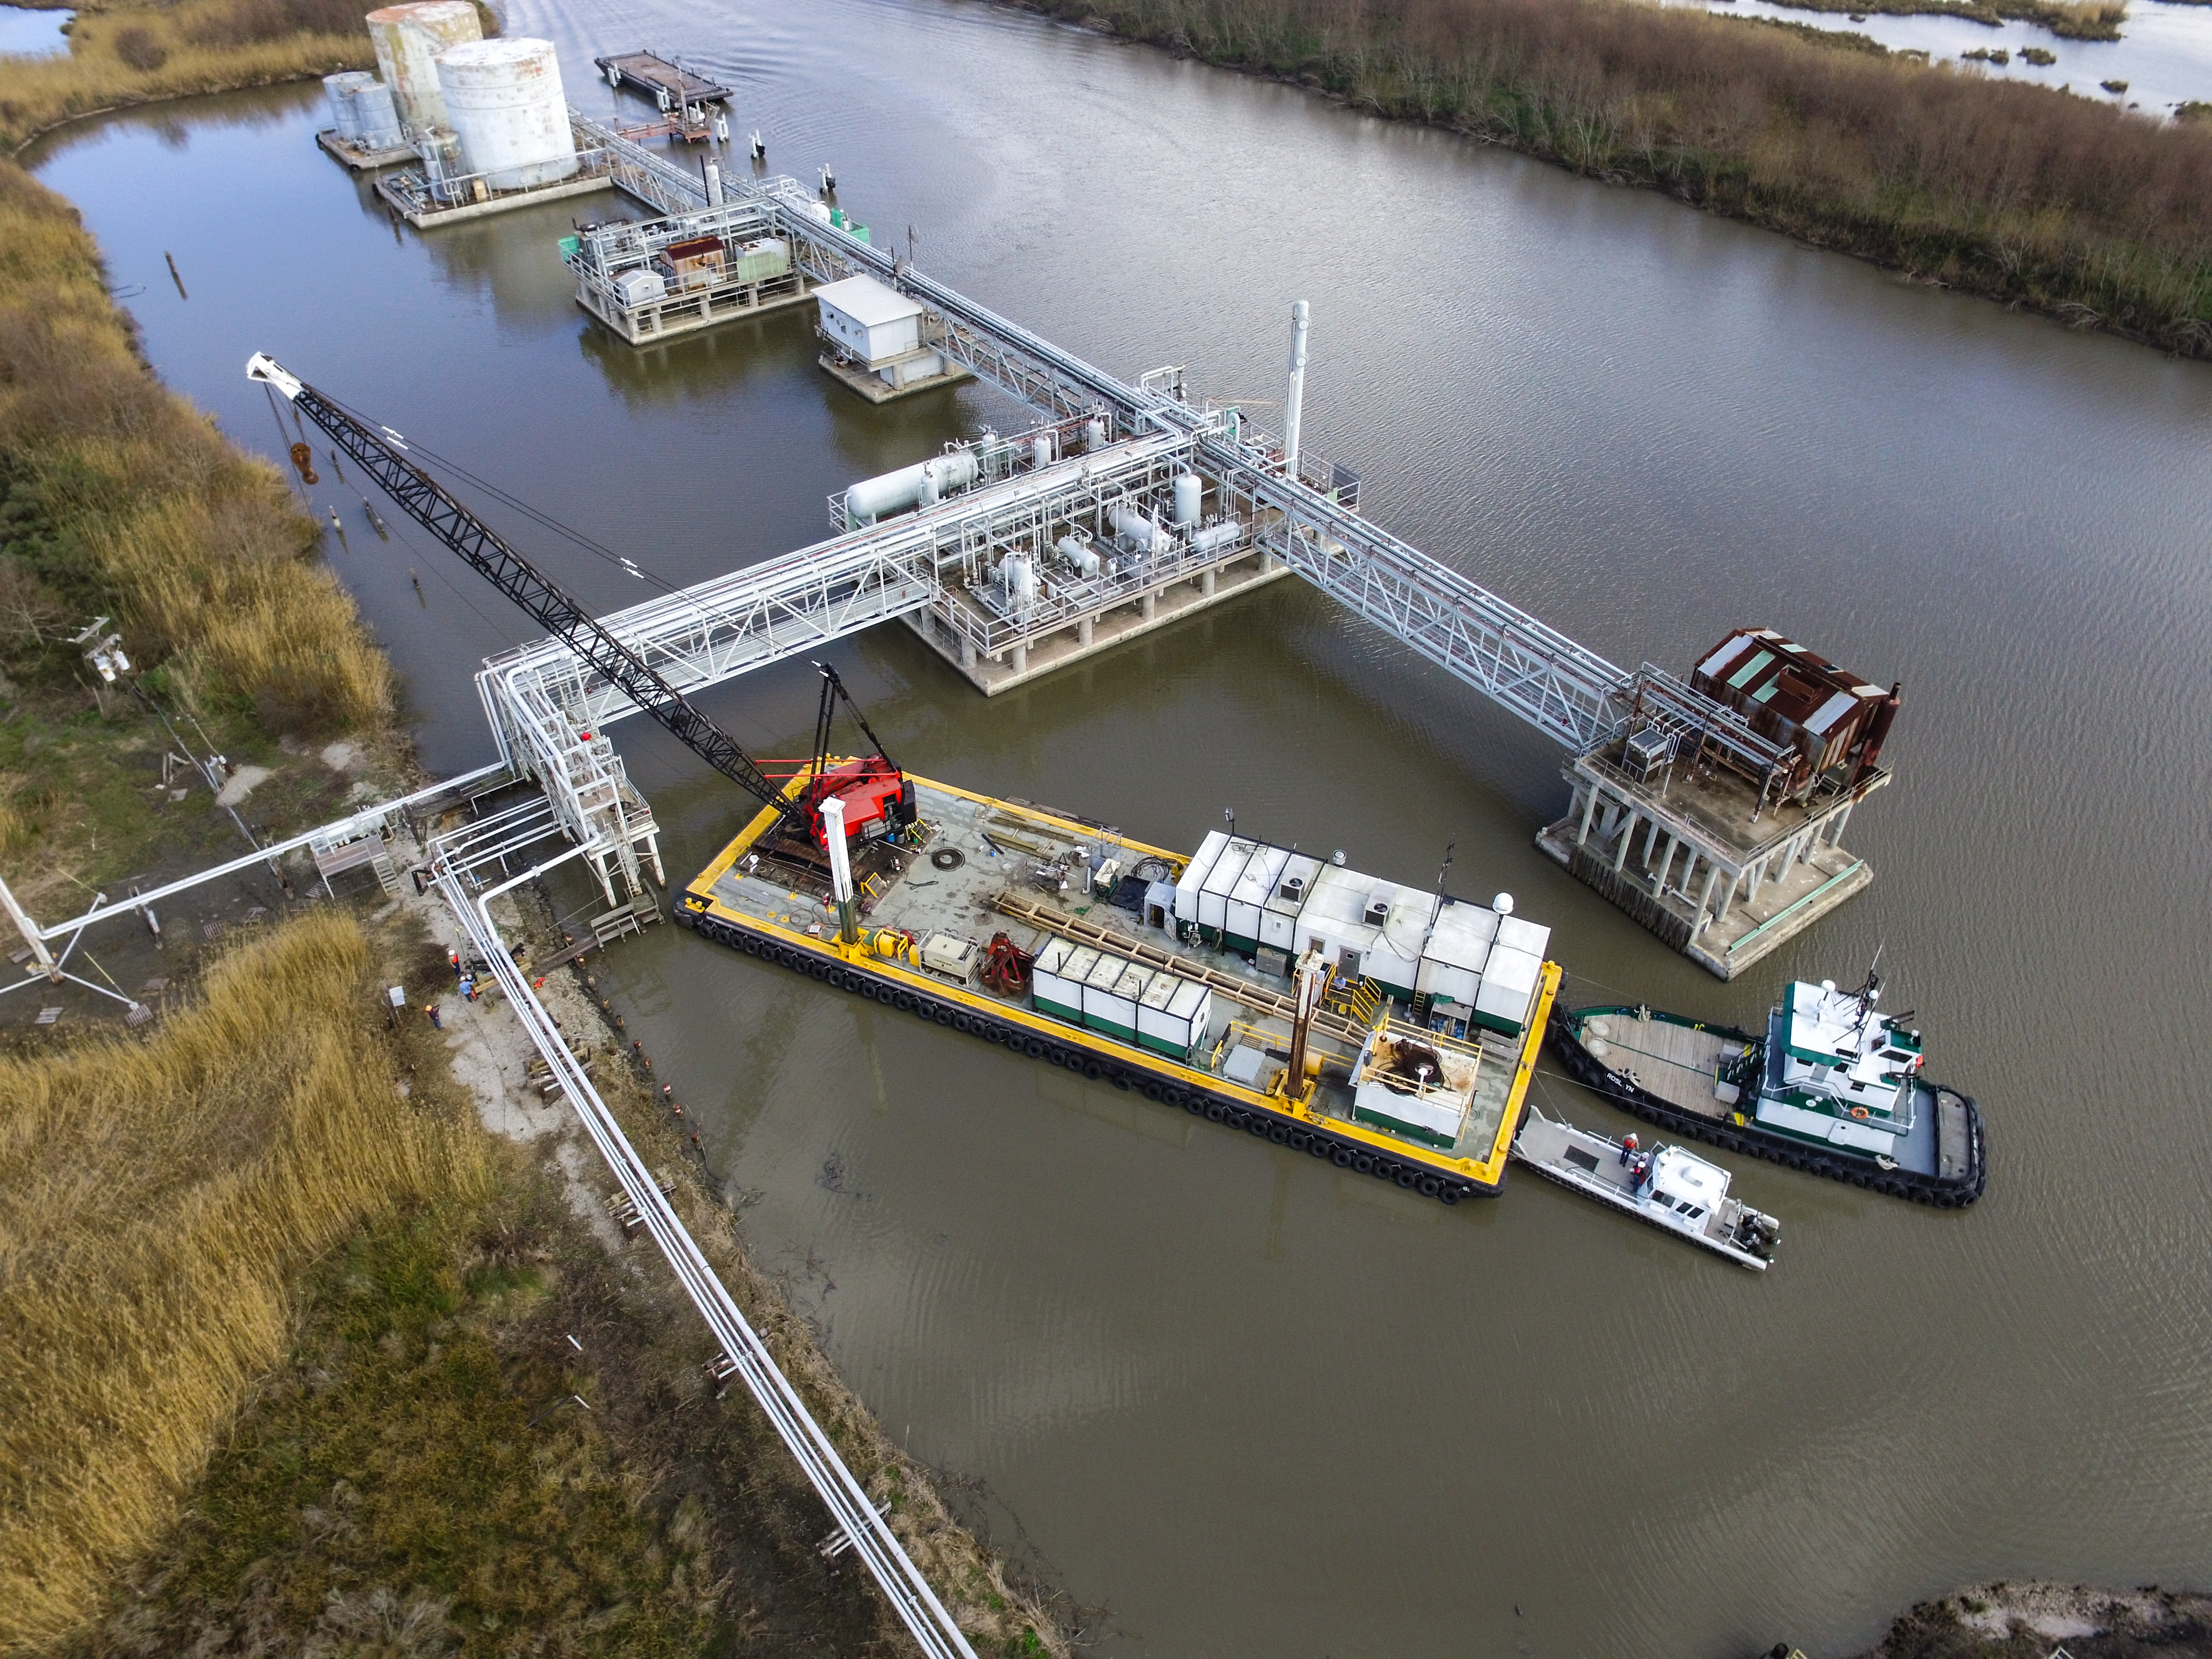 Broussard Brothers - Pipeline, crane barges, tug boats, dock